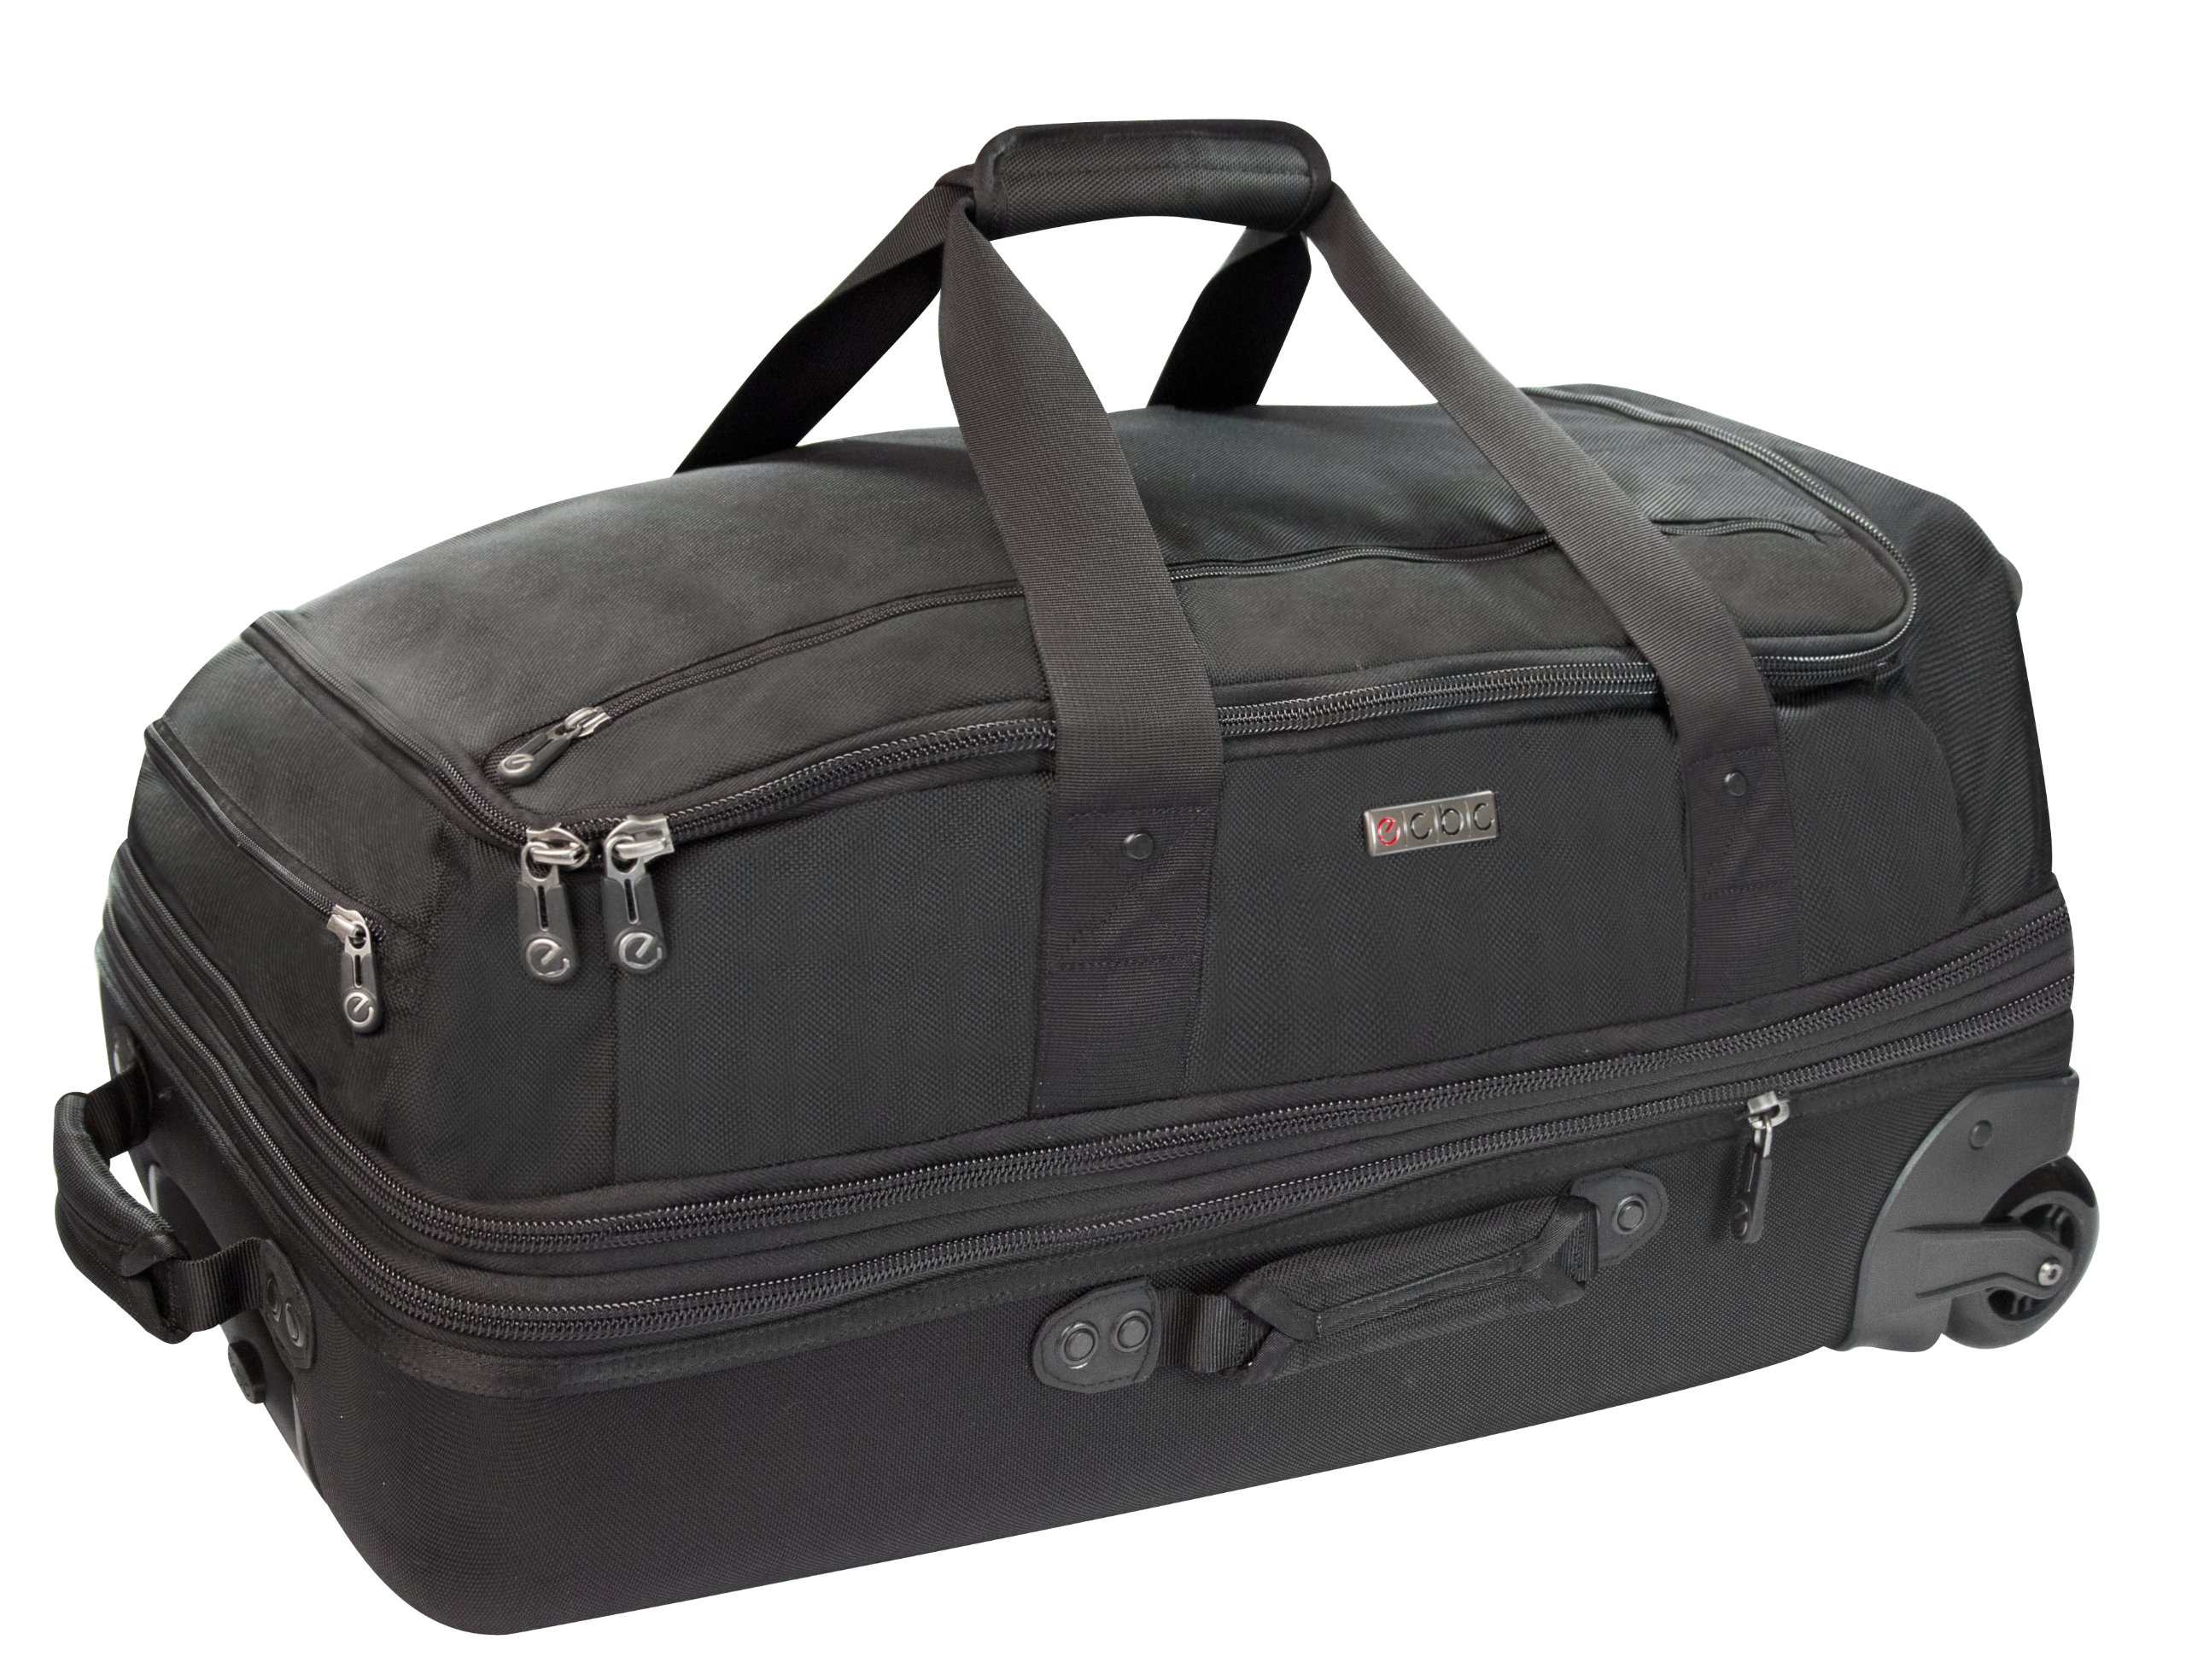 ECBC 26 Inch Falcon Rolling Duffle | Modern Business Travel Carry On & Weekender Bag (Black)